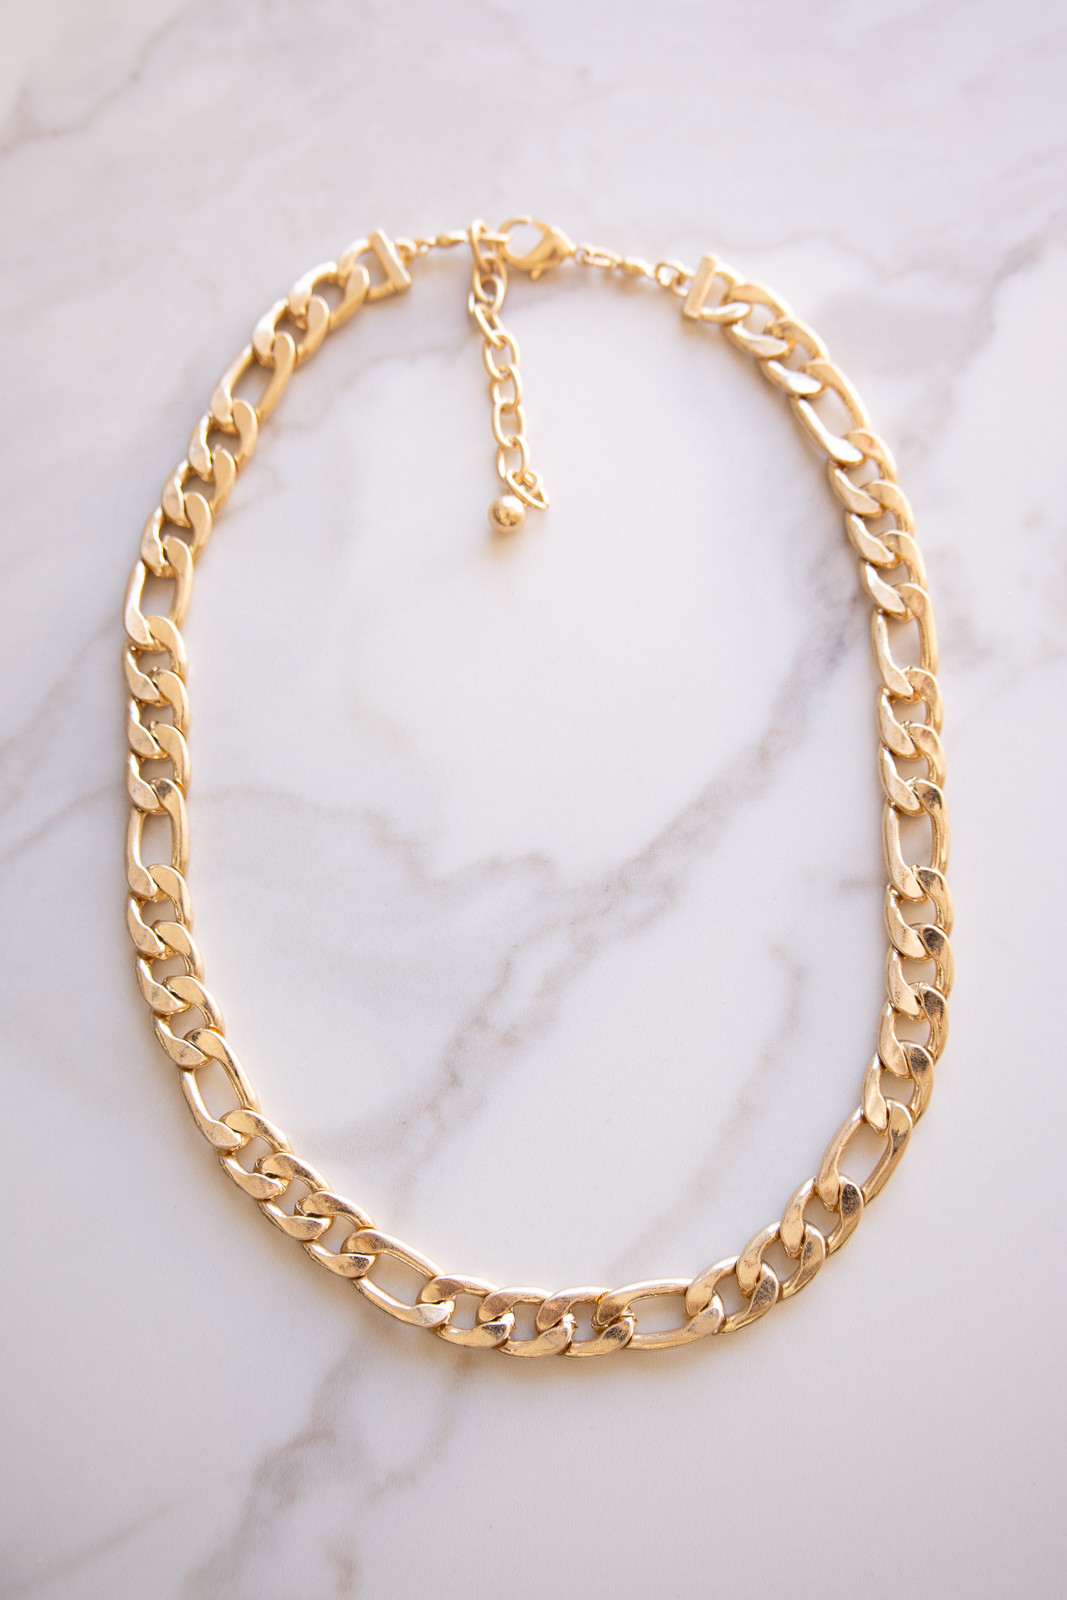 Brushed Gold Chain Necklace with Lobster Clasp Closure